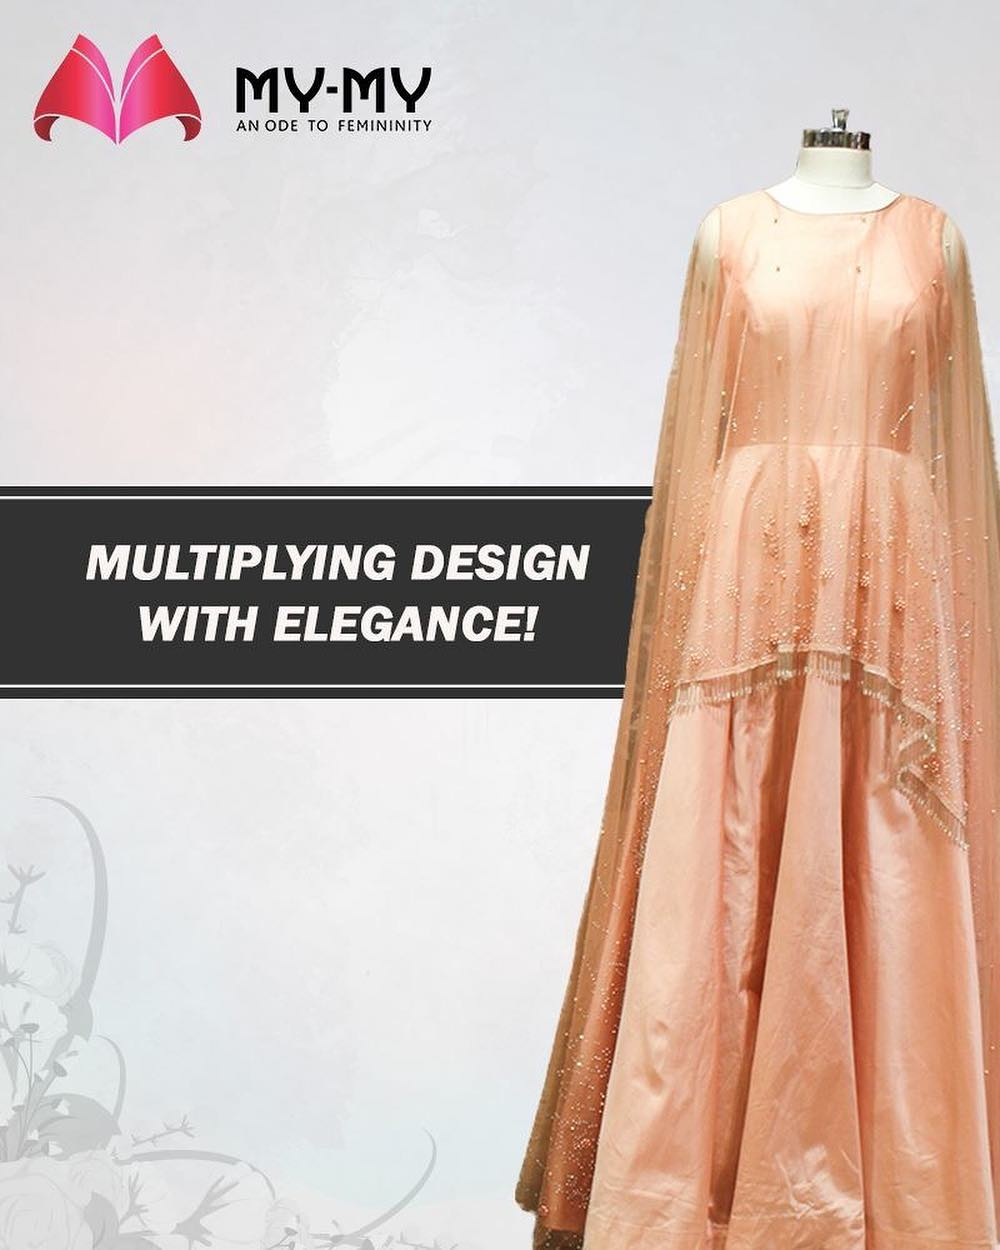 Dress up in magnificent apparels!  #MYMYSale #MyMy #MyMyAhmedabad #Fashion #Ahmedabad #FemaleFashion